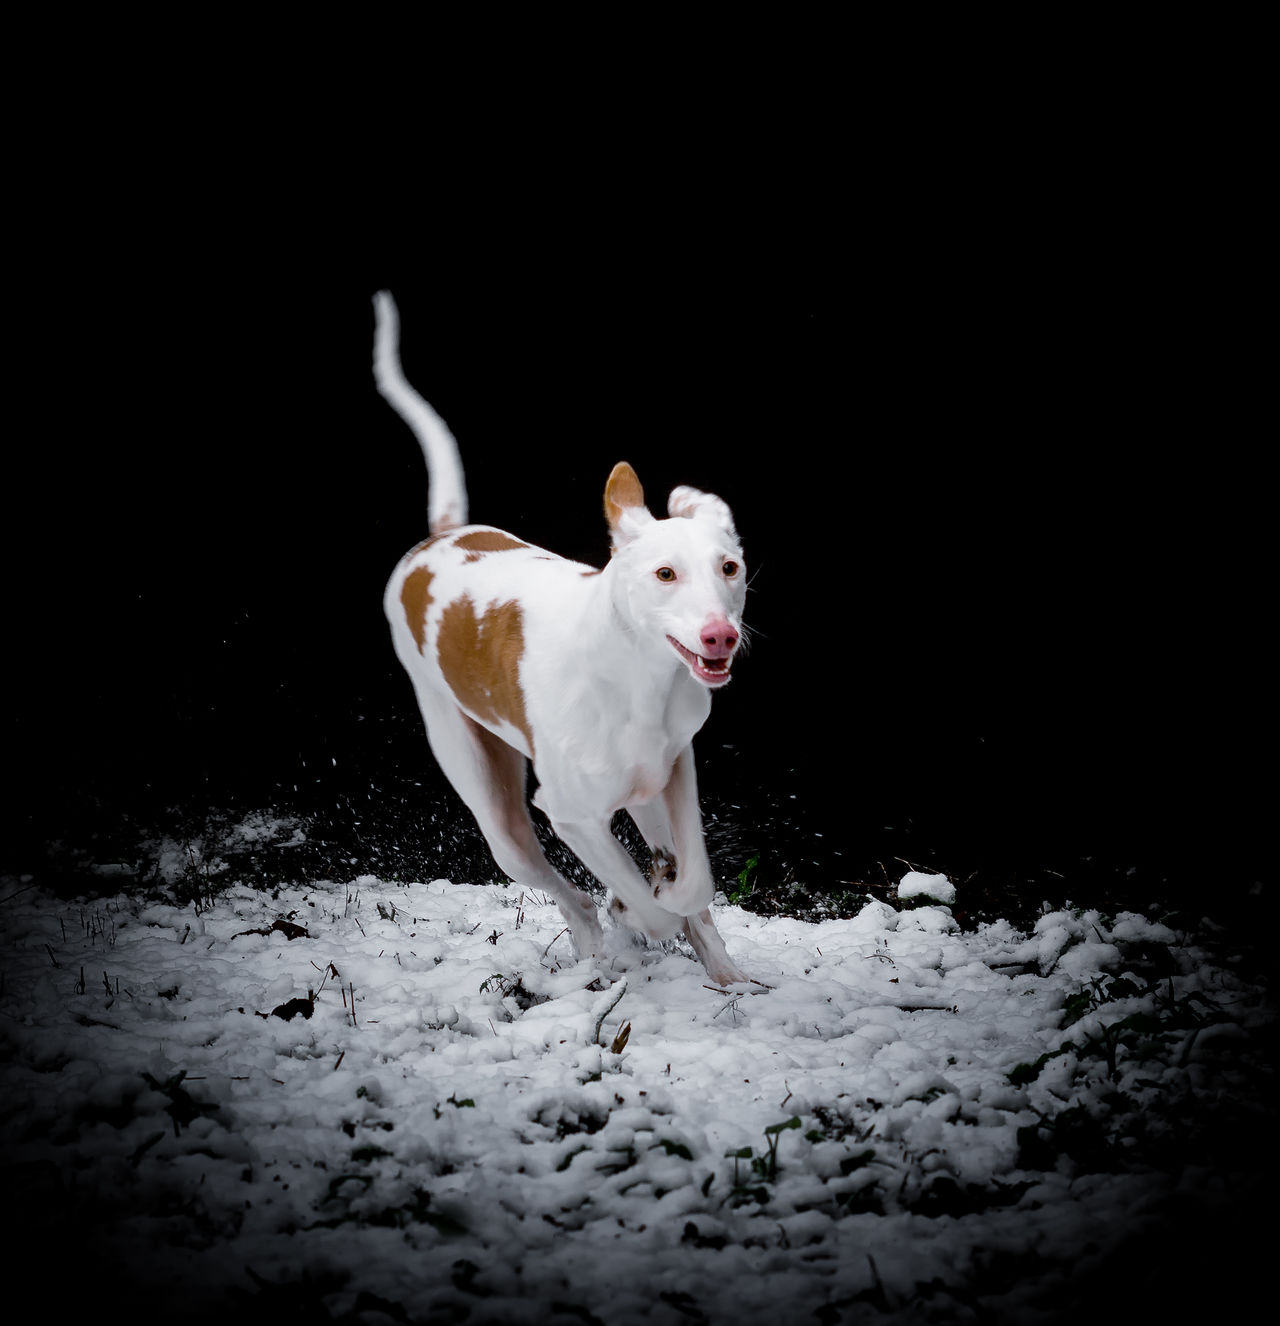 Animal Themes Black Background Dog Full Length Ibizan Hound Mammal Night No People One Animal Pets Podenco Ibicenco Portrait Running Snow Speed